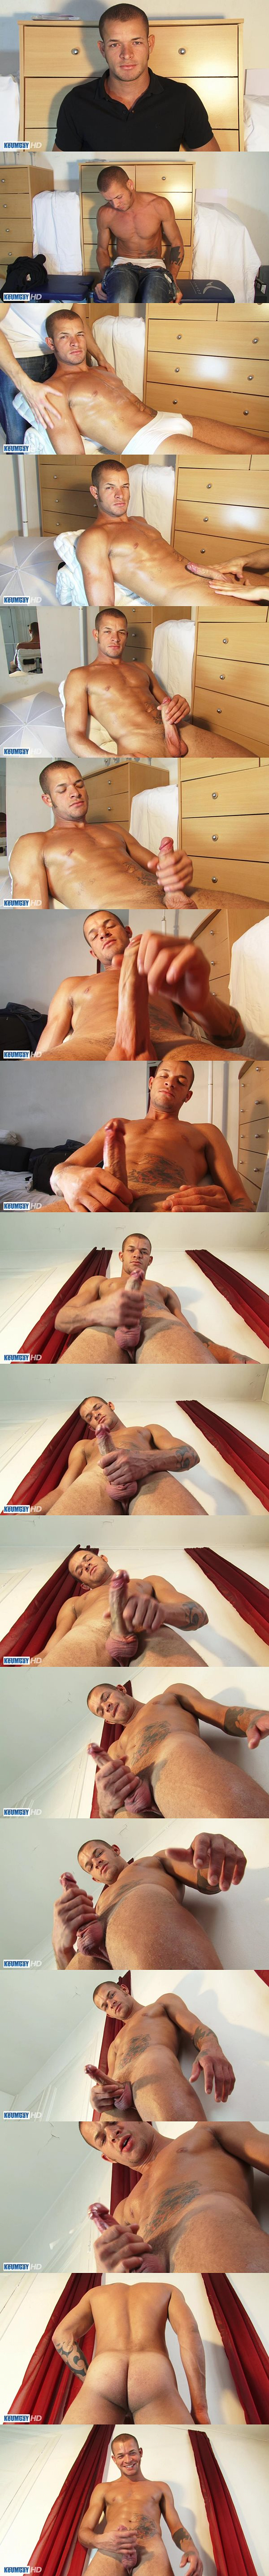 Keumgay - Masculine Brazilian straight hunk Marlon and sexy French gymnast Esteban gets massaged before they jerk off at Keumgay 02